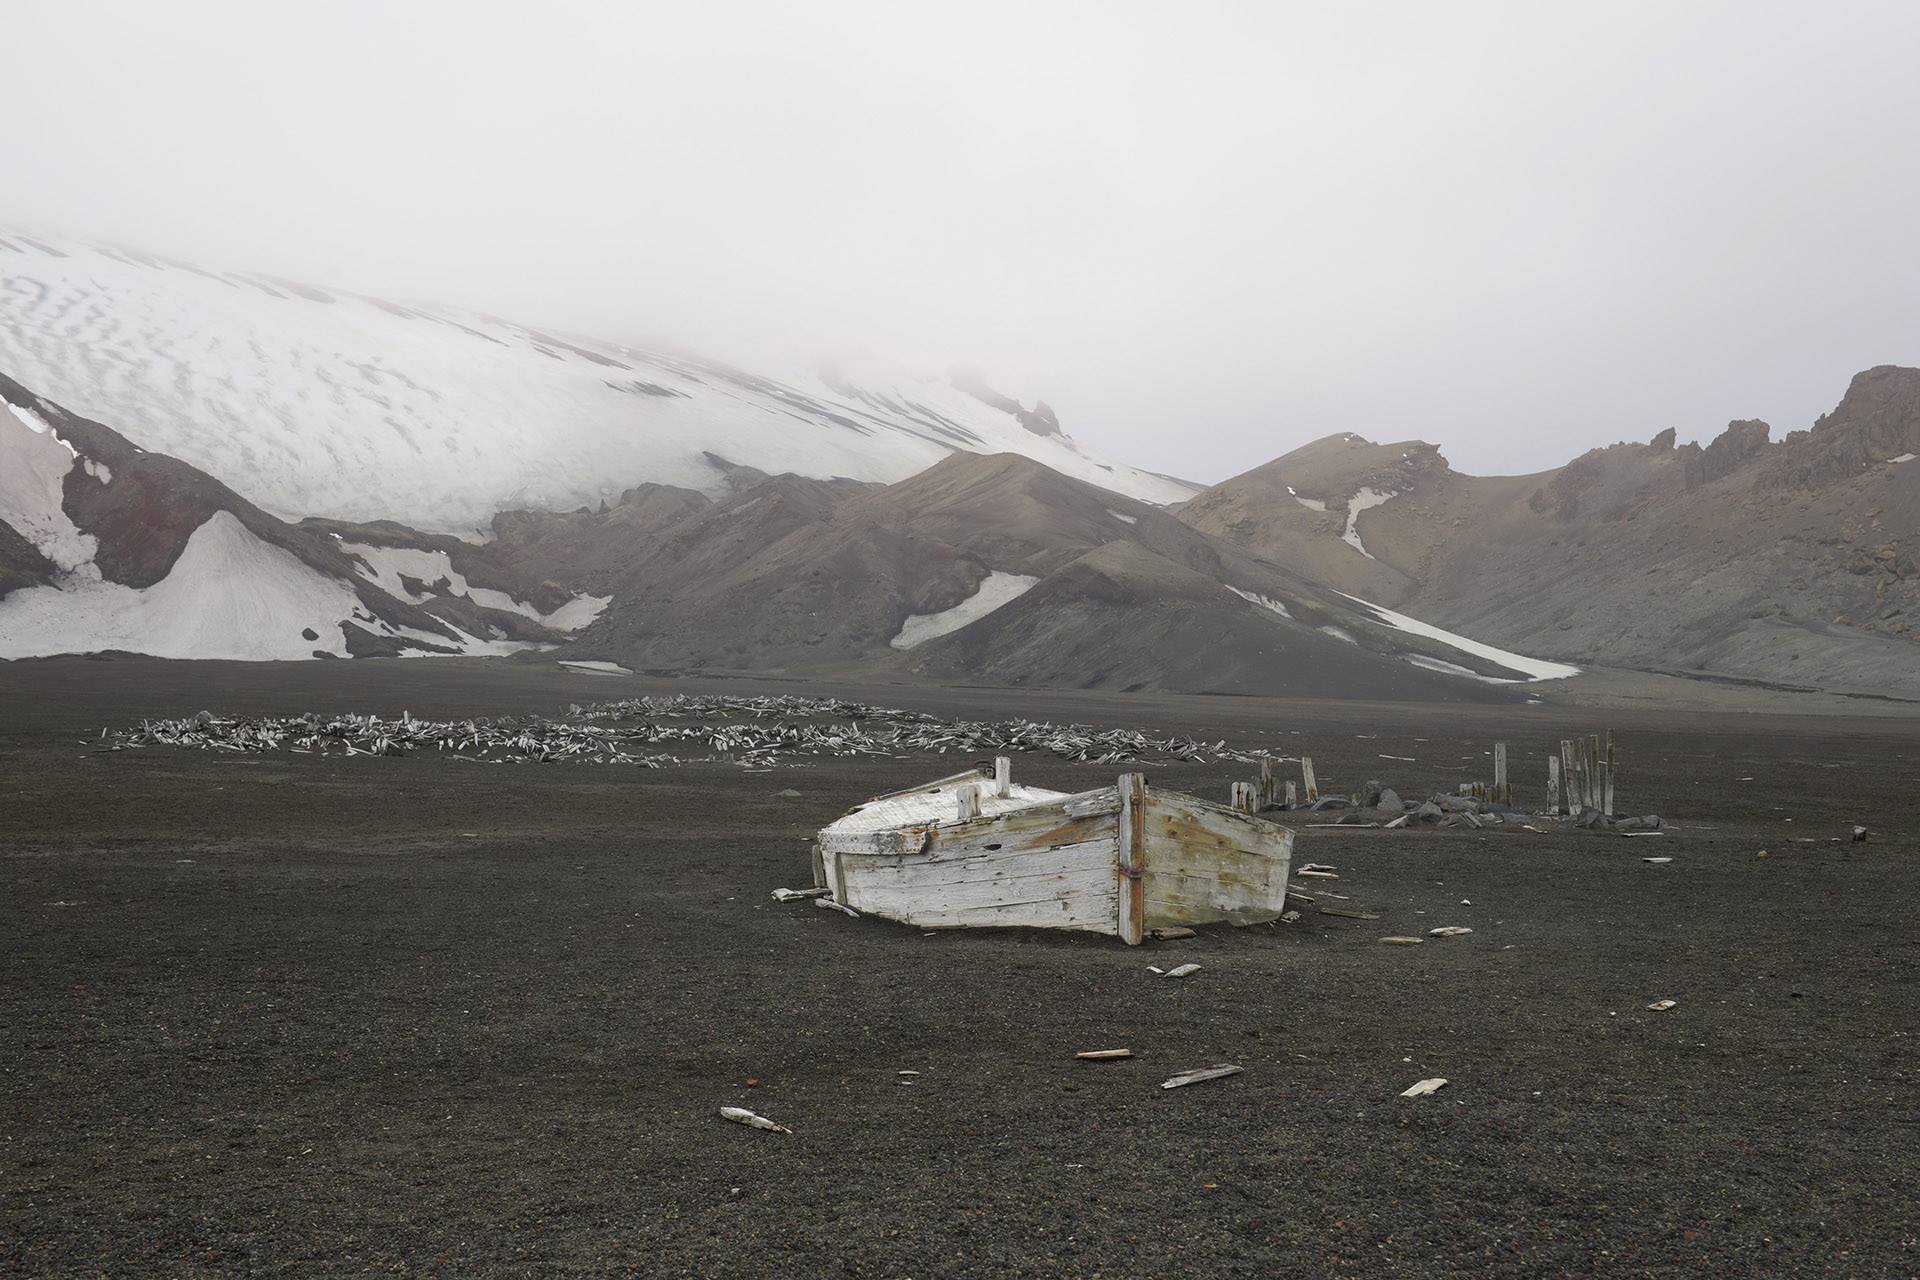 Deception Island, South Shetland Islands, Antractic Ocean V, 2014<br/>